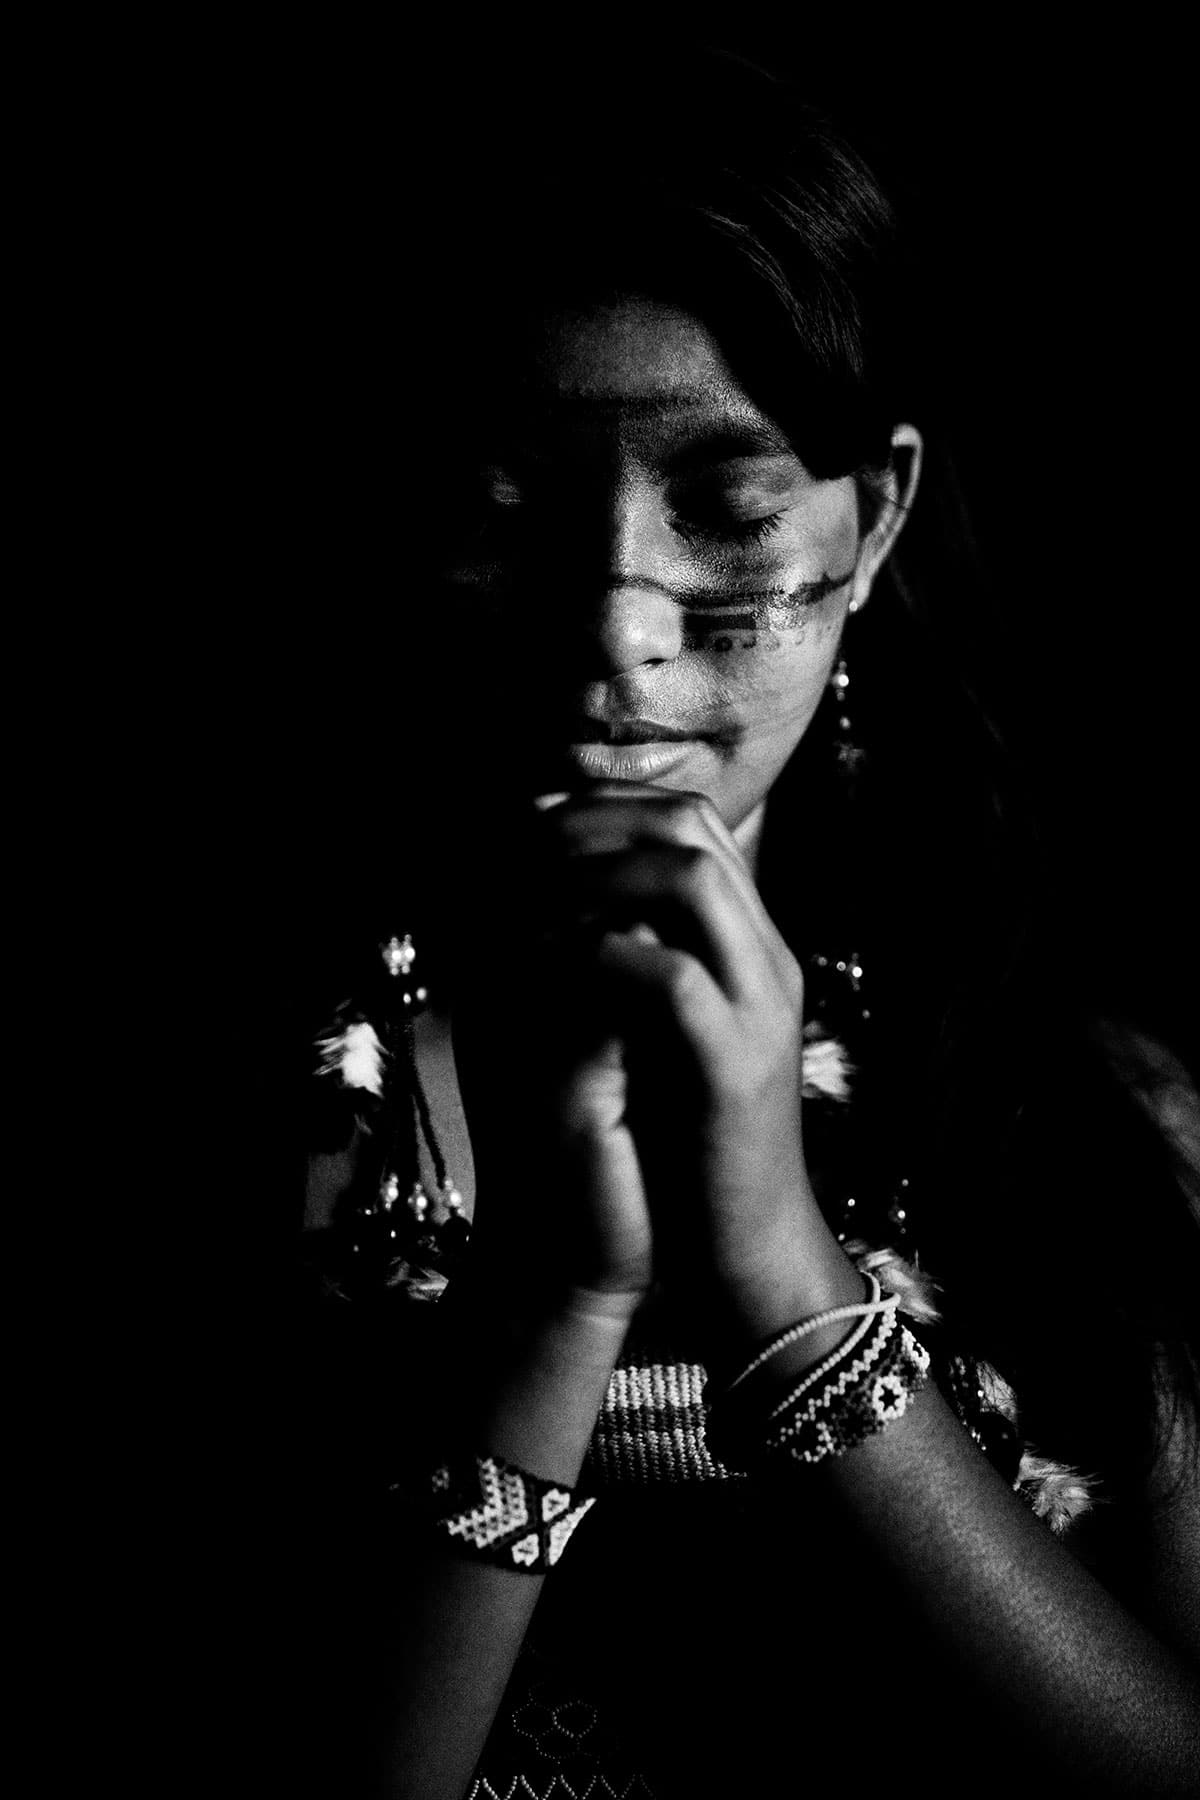 Eyes Closed Portrait of a Guajajara: Black and White Portrait Photography by Jean Tran and Élysée Lang